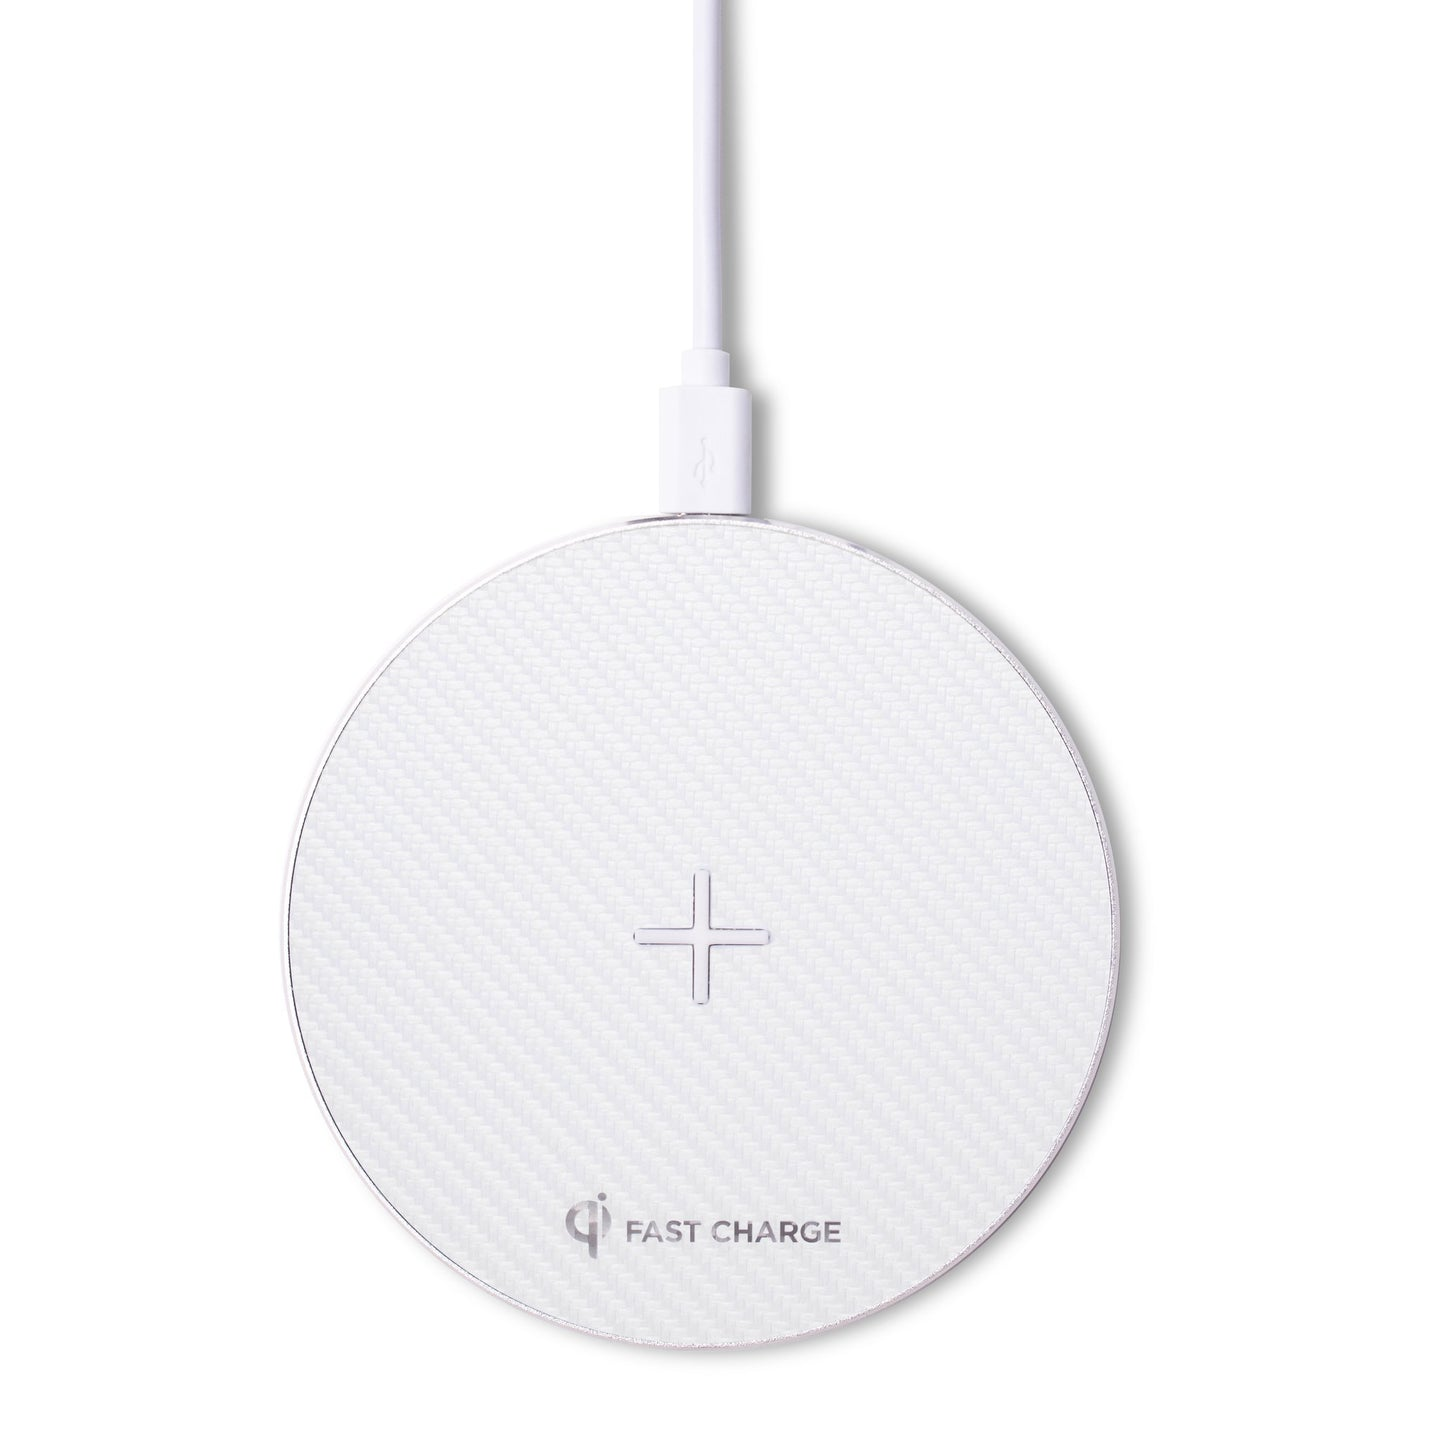 Fast Wireless Charger - Stealth - White